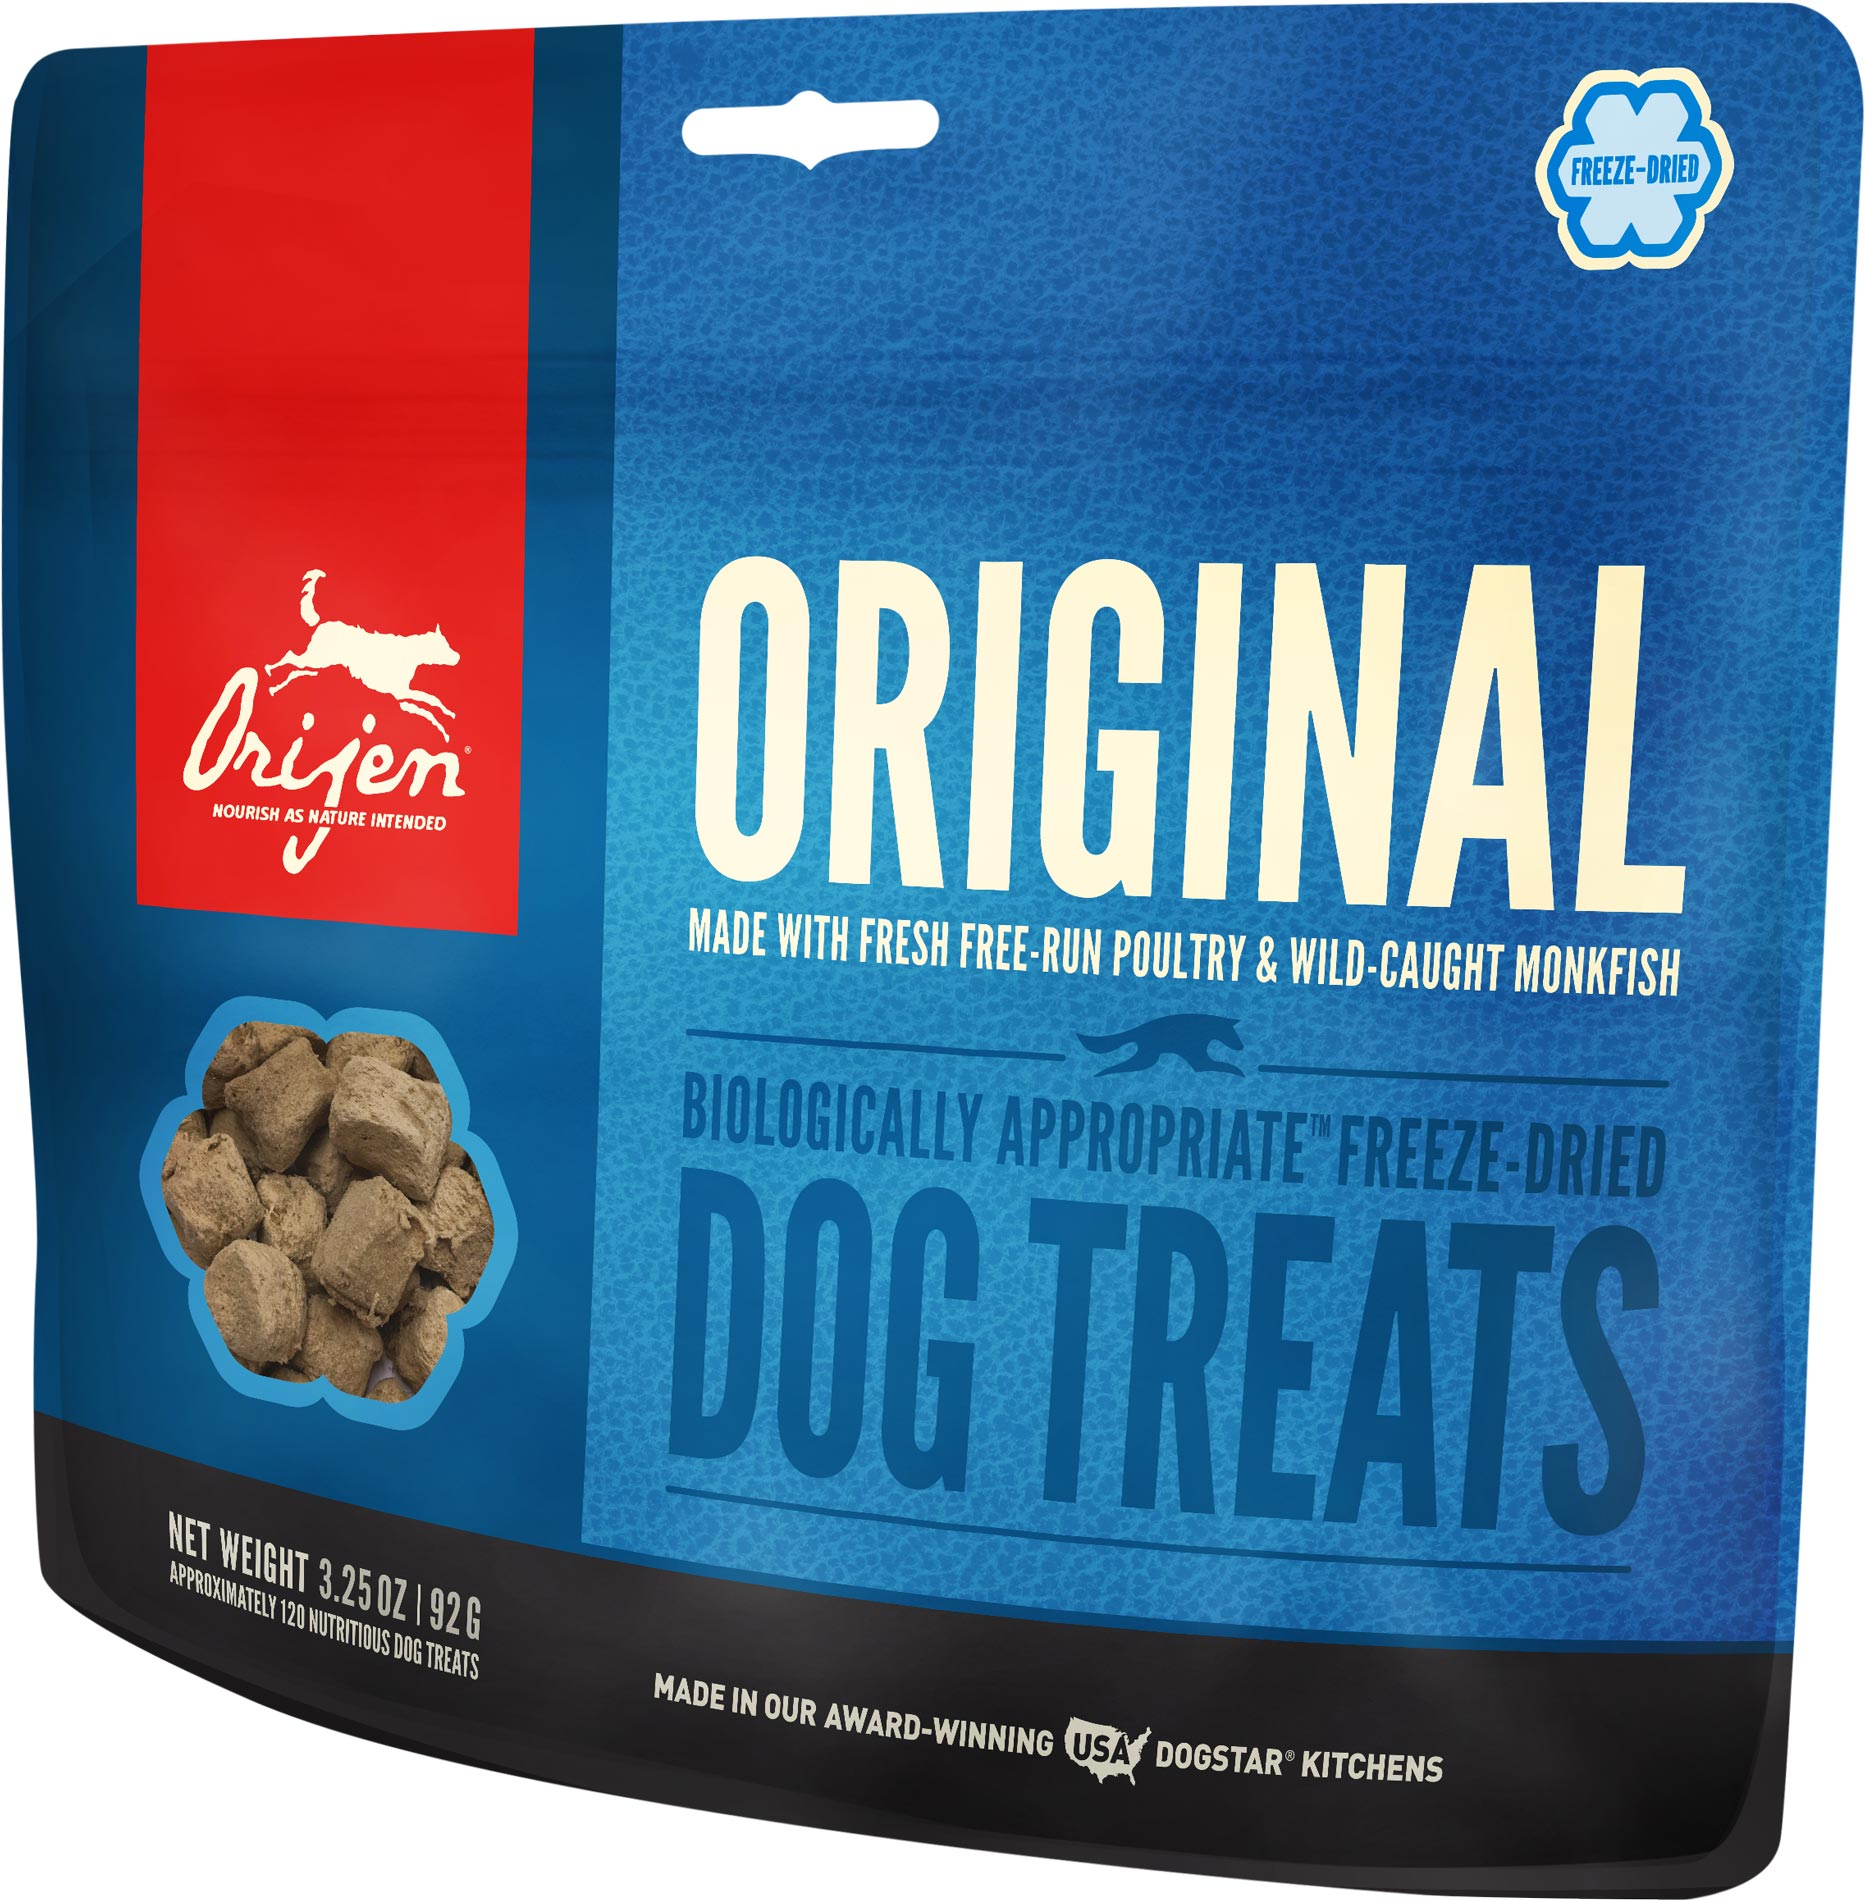 Orijen Original Freeze-Dried Dog Treat – The Green Spot